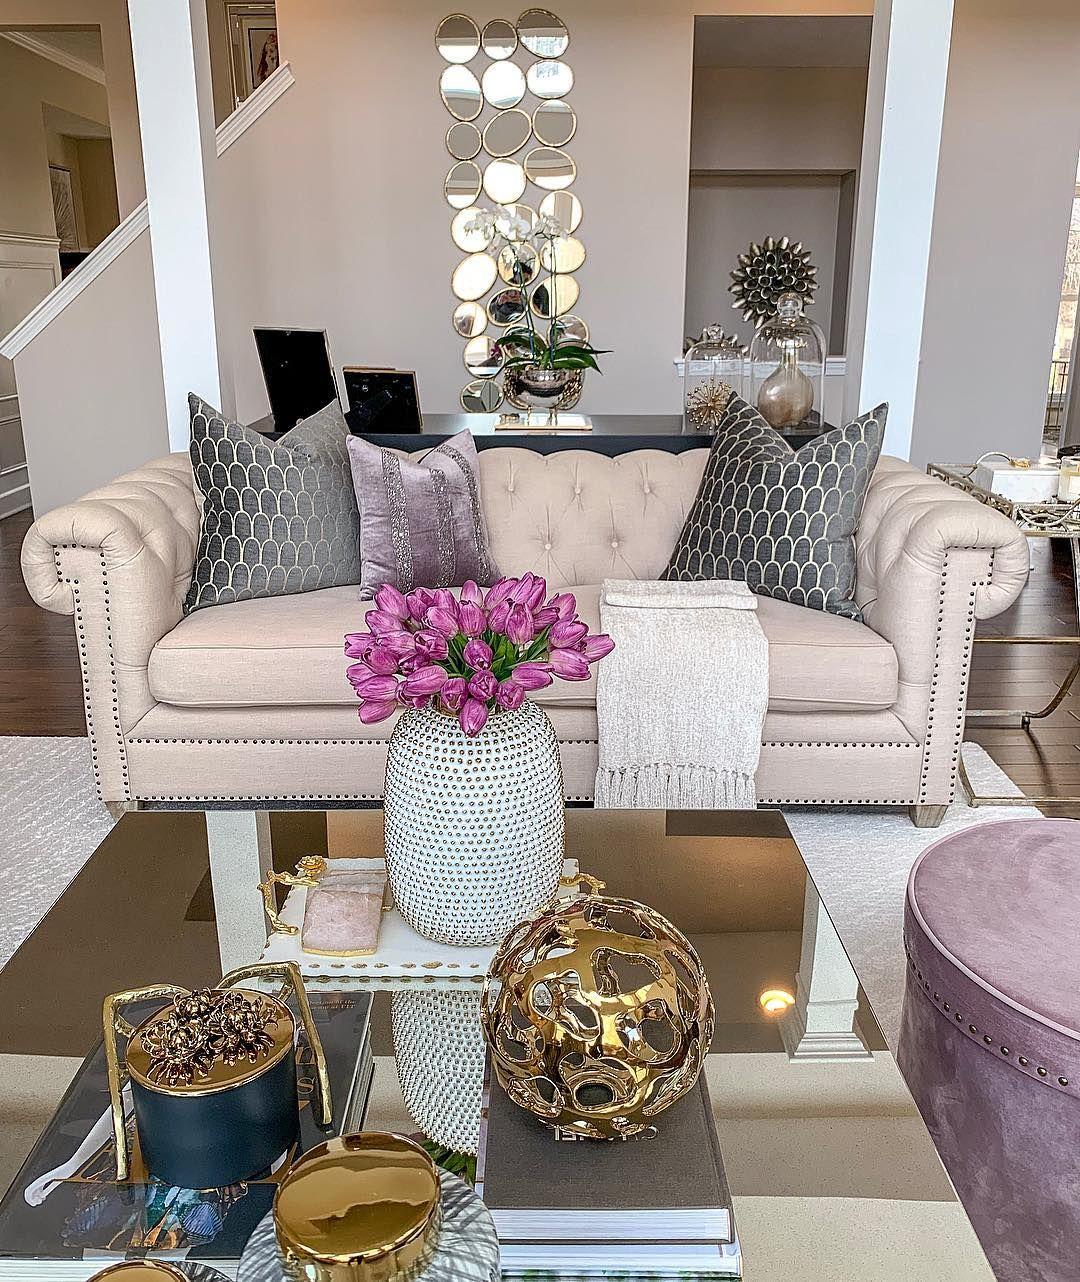 Farah Merhi On Instagram The Other Day A Few Ladies And I Were Having A Discussion Abou Home Decor Online Living Room Decor Cozy Living Room Decor Apartment